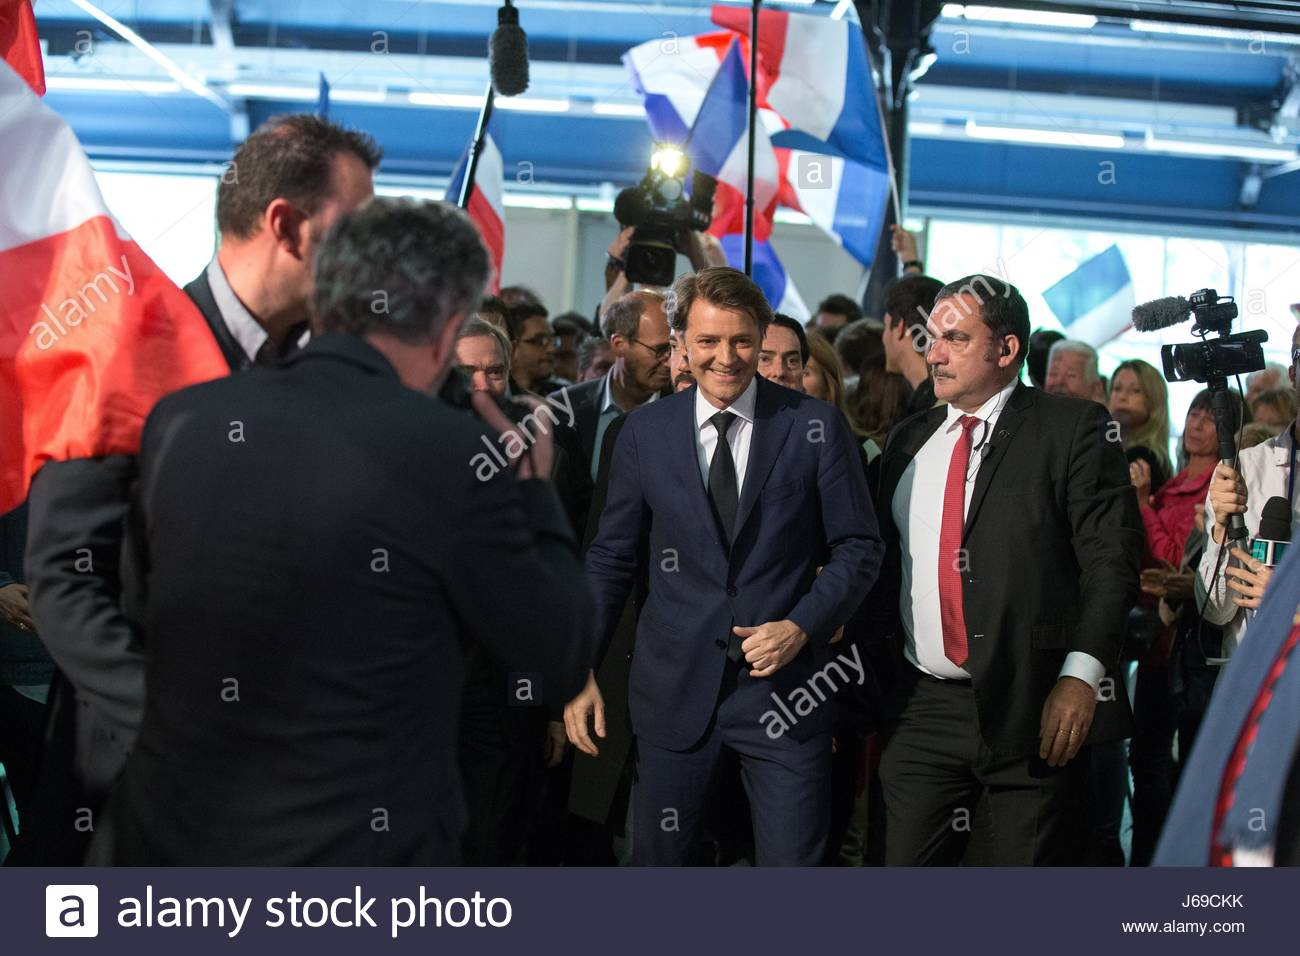 Paris, France. 20th May, 2017. French right-wing Les Republicains (LR) party senator and head of the campaign committee - Stock Image